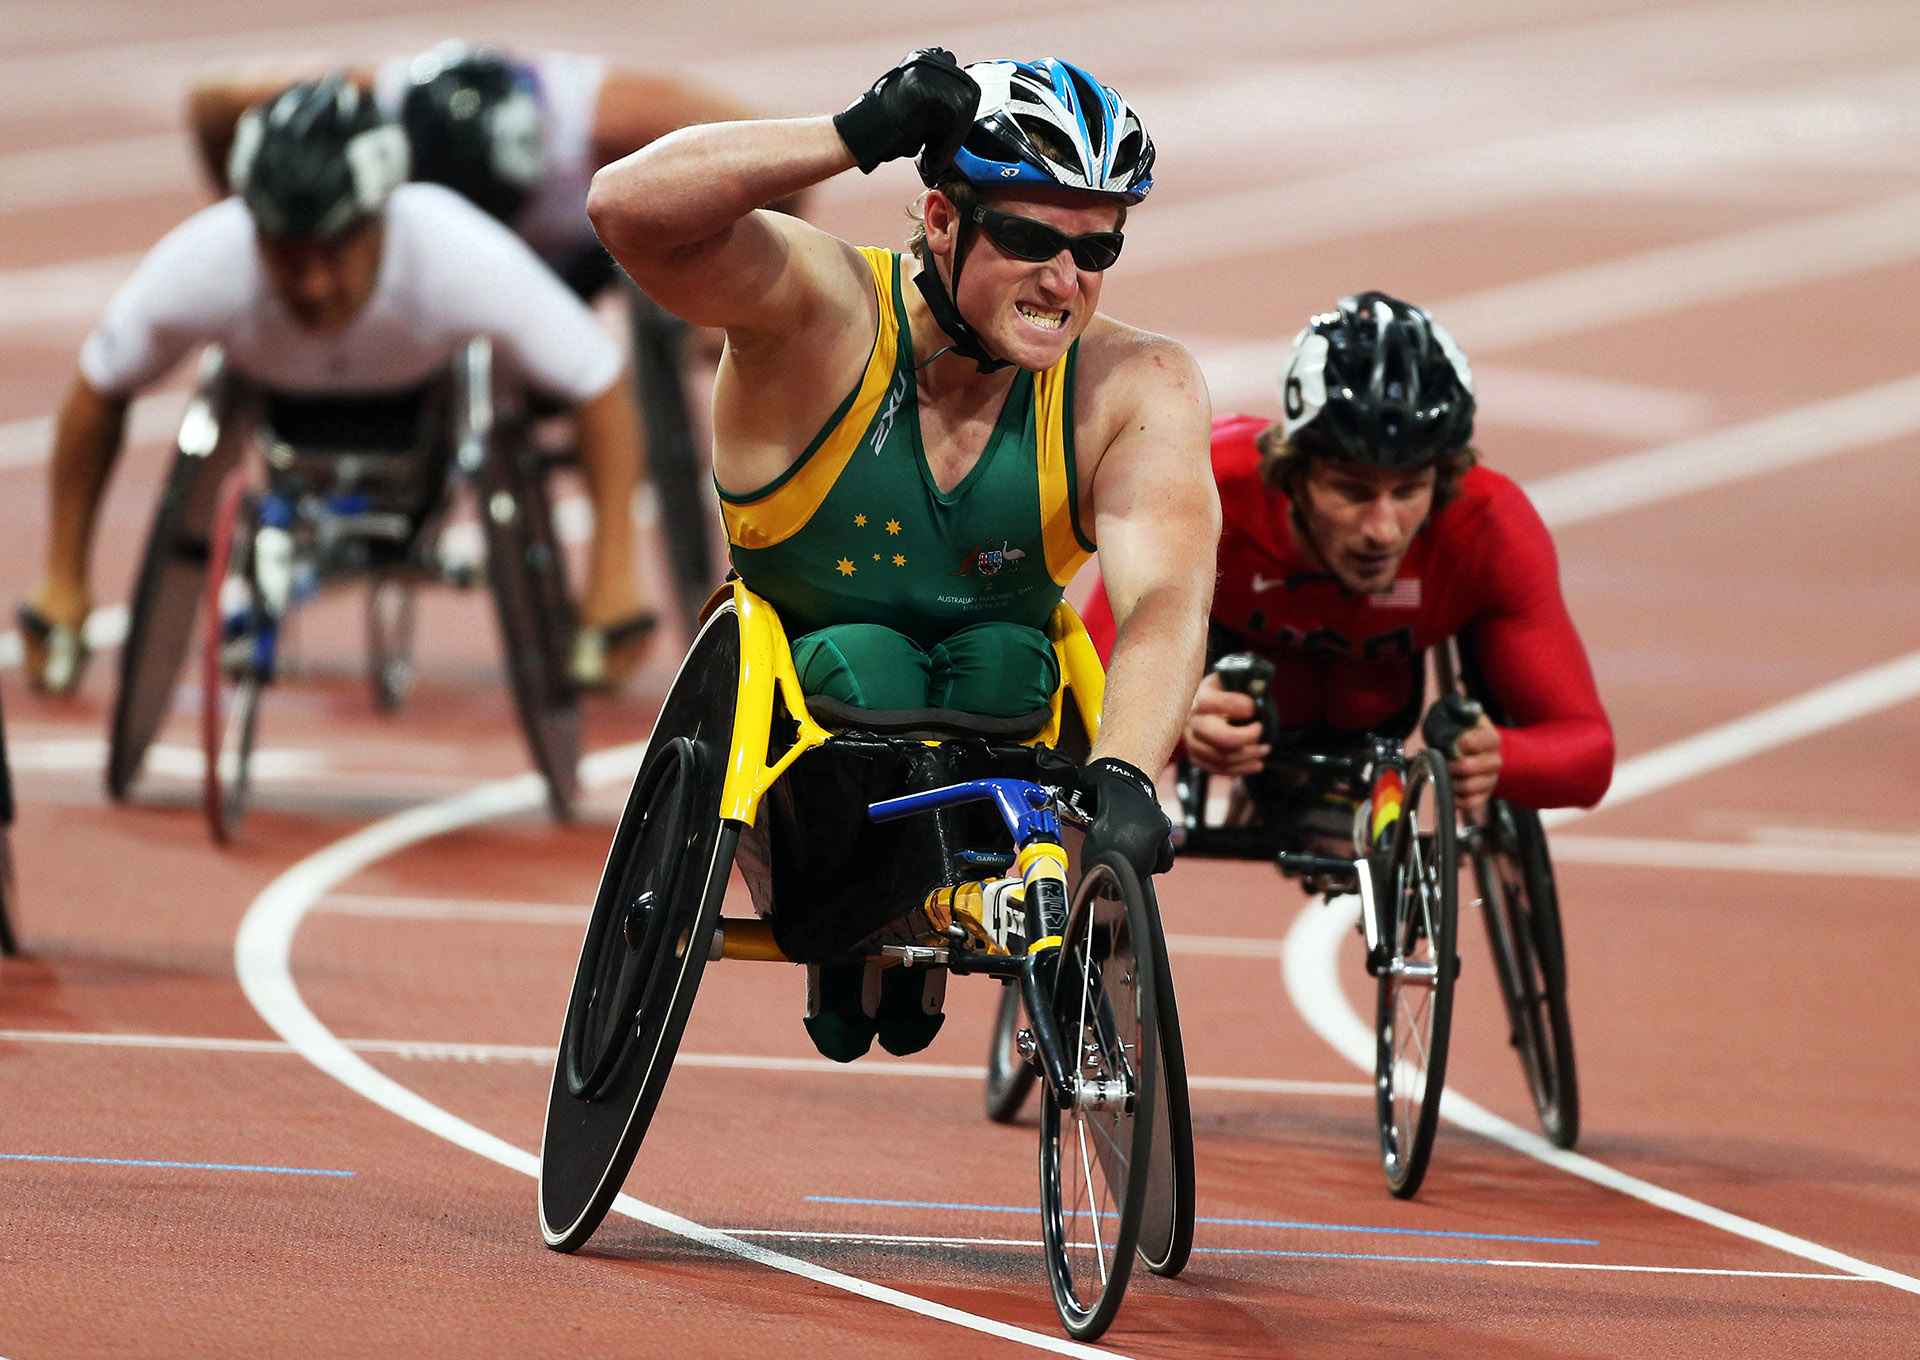 Photograph of Australian Paralympic team members at the 2012 Summer Paralympic Games in London